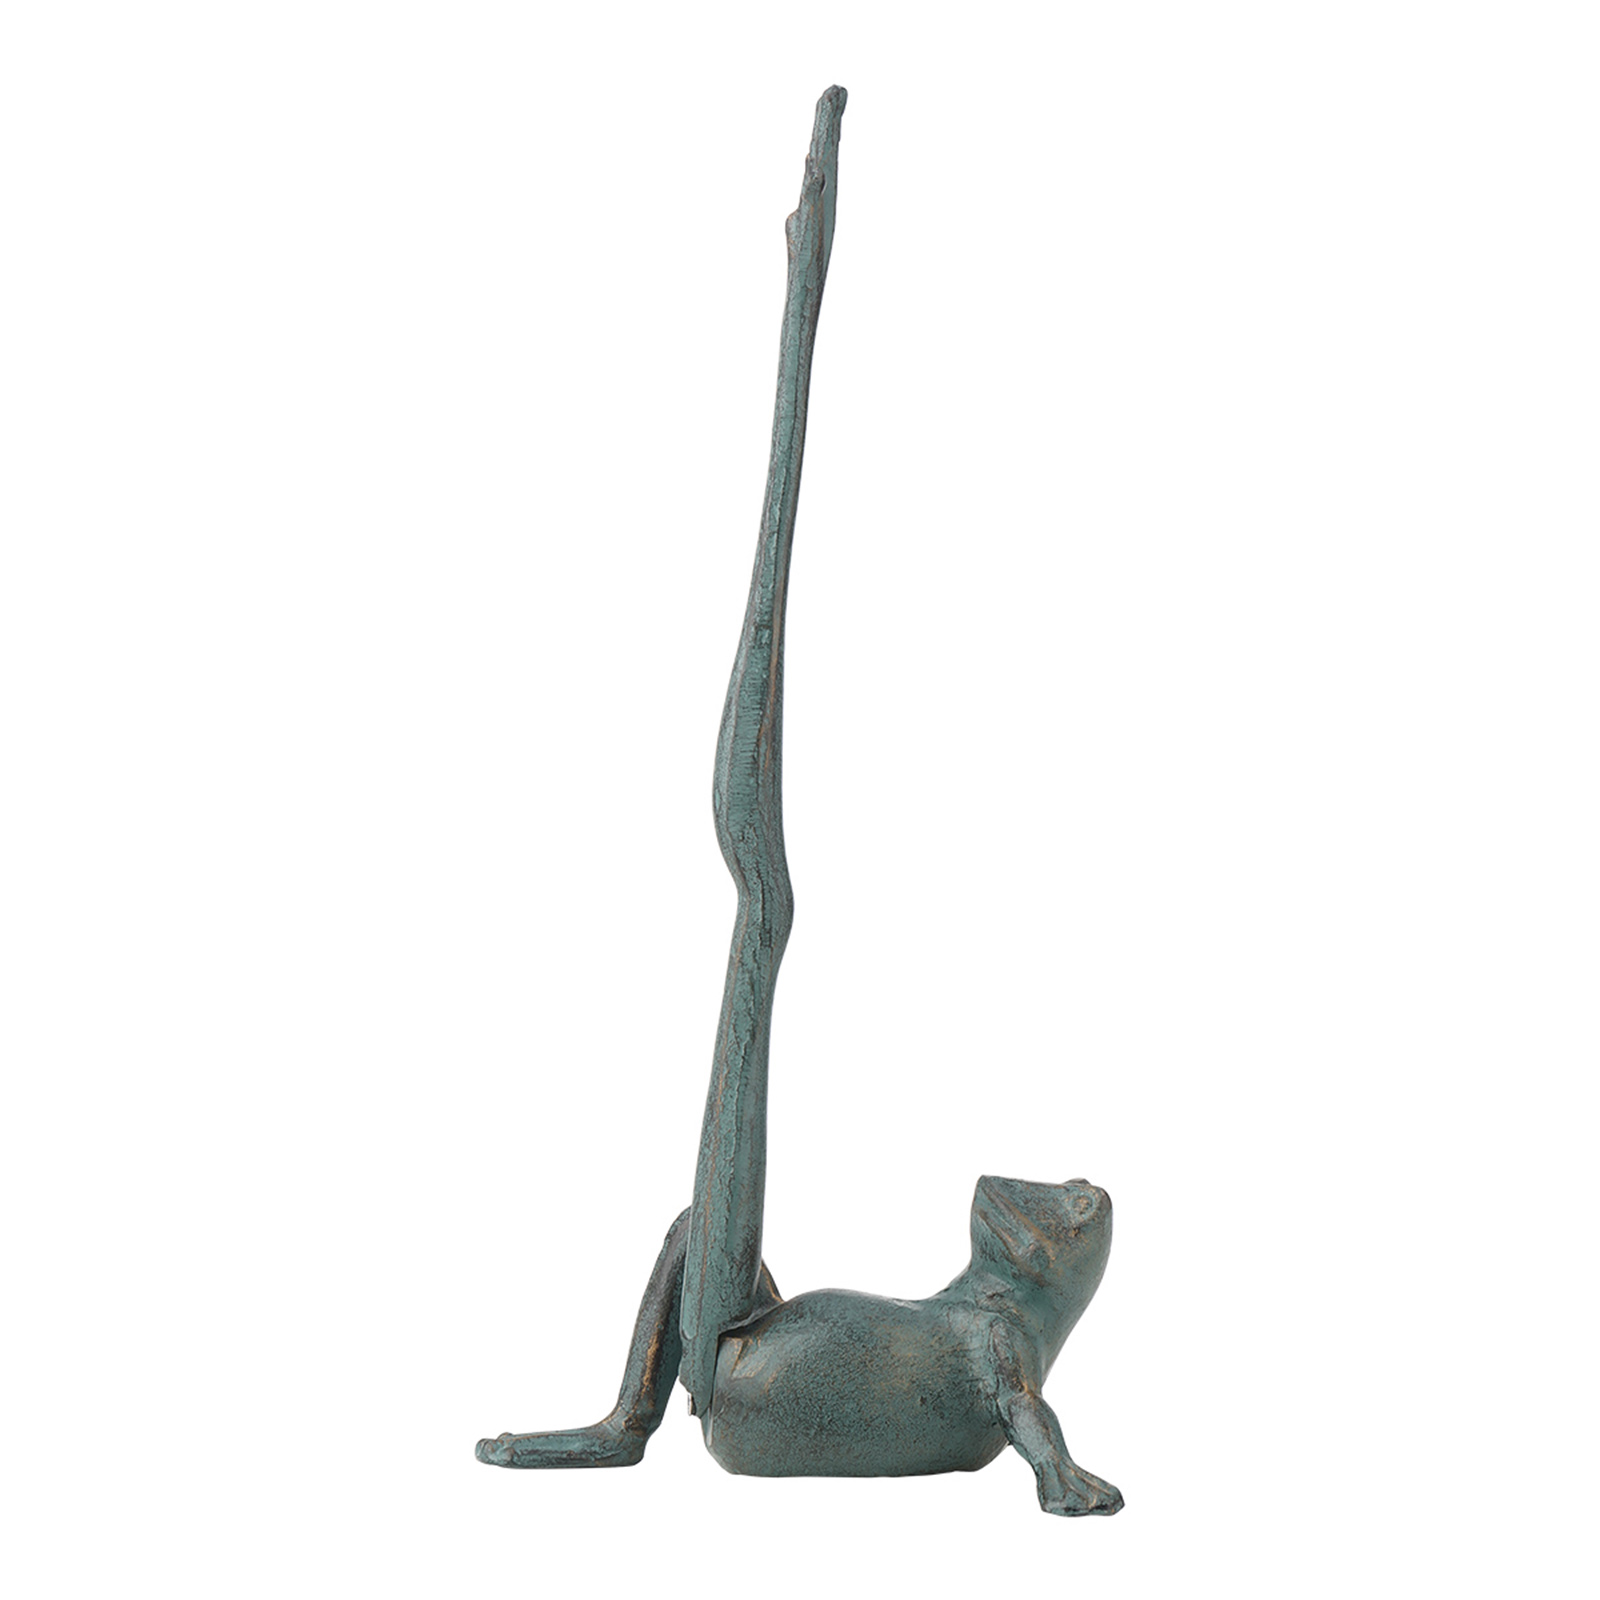 Frog Paper Towel Holder Decorative Animal Toilet Paper Roll Holder Antique Cast Iron Organizer Cast Iron Paper Towel Stand